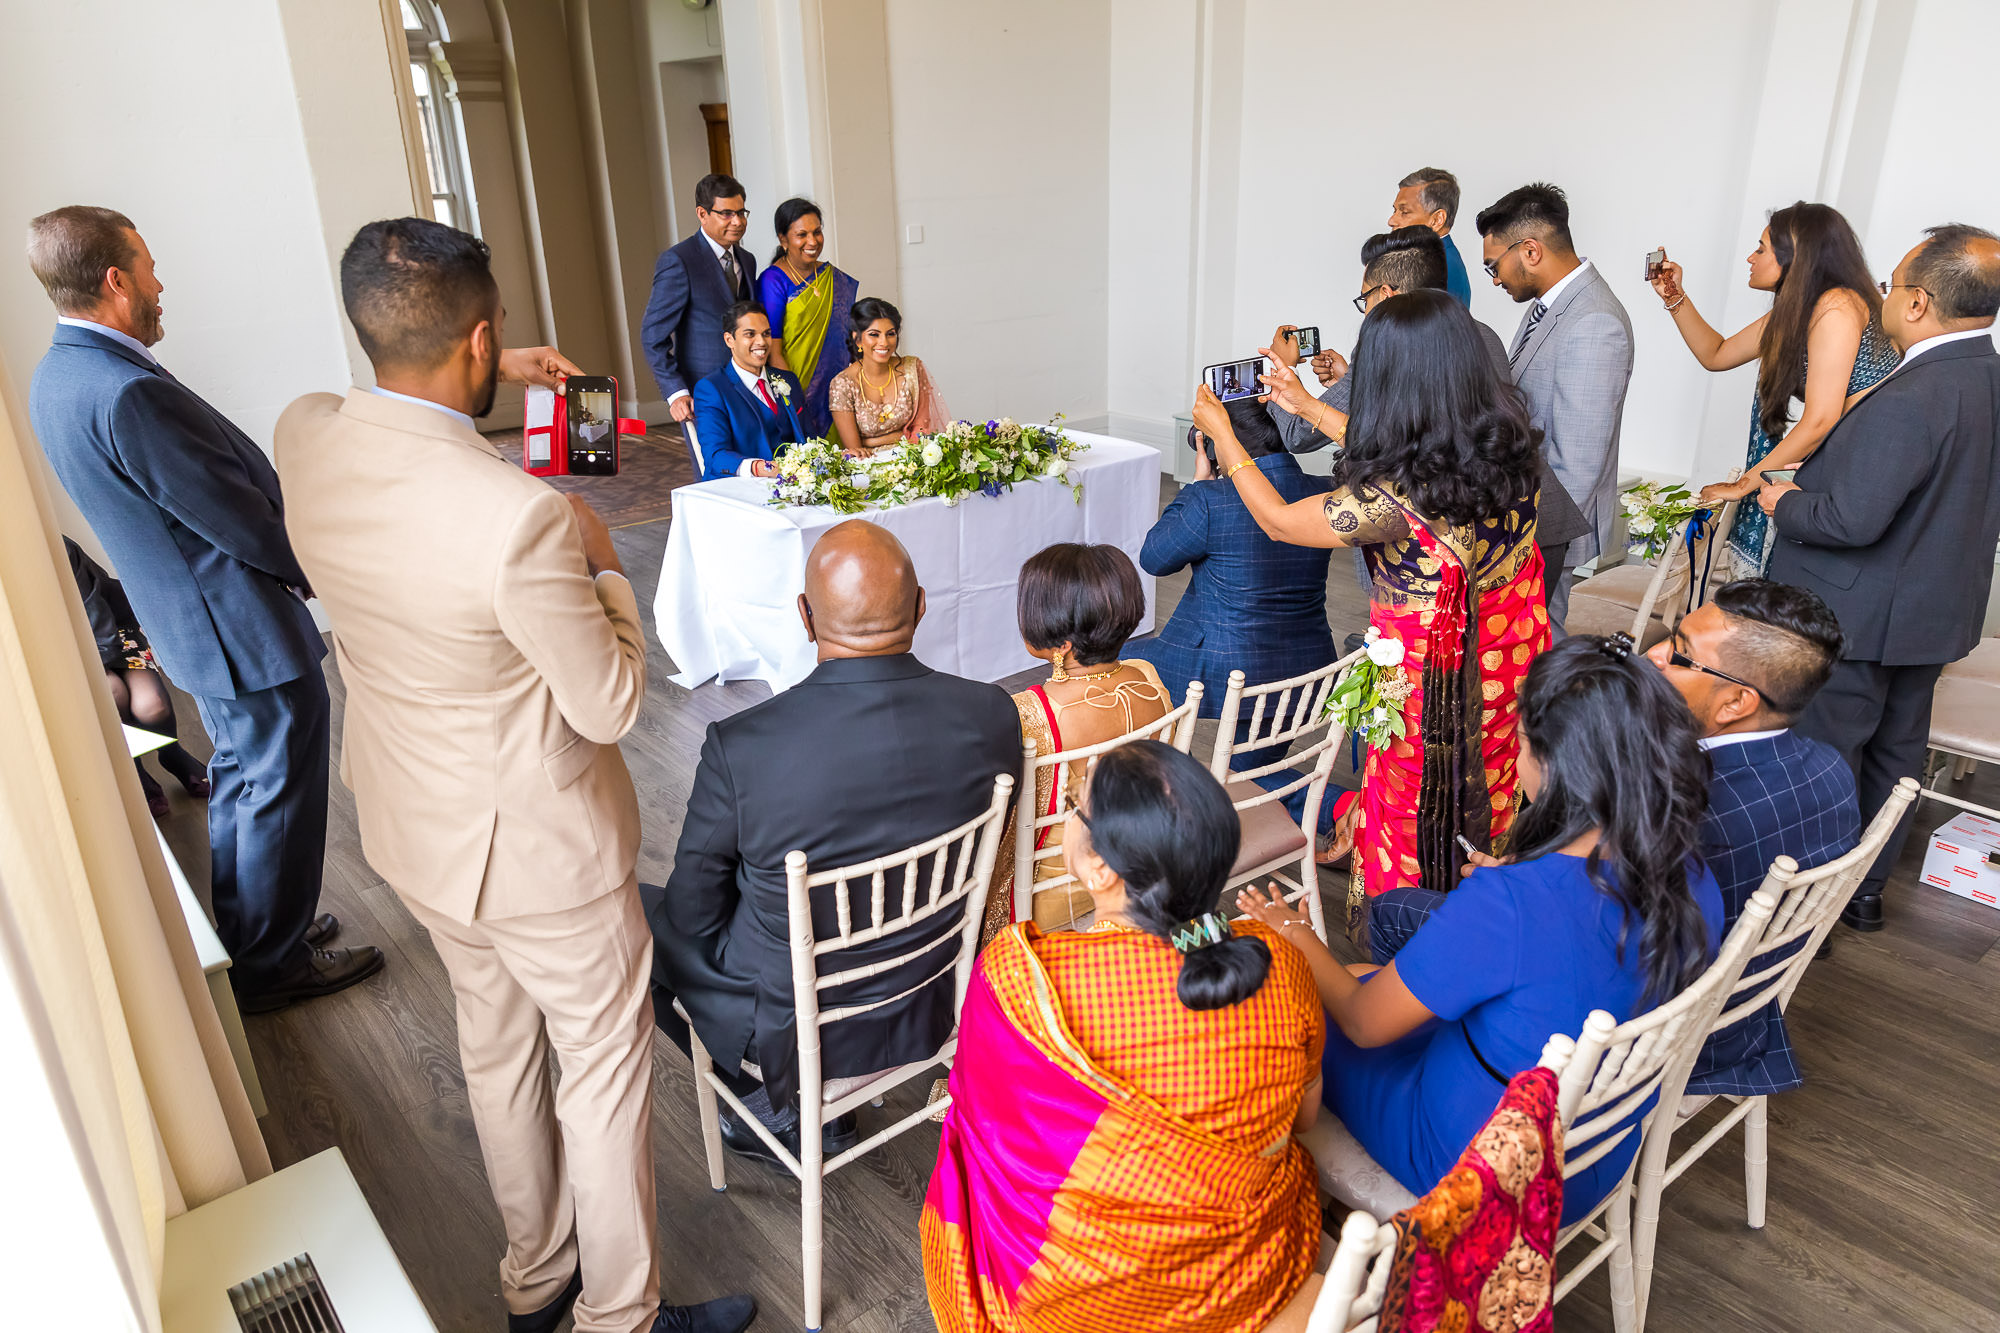 asian-wedding-hindu-tamil-photographer-heythorpe-oxford-0233.jpg